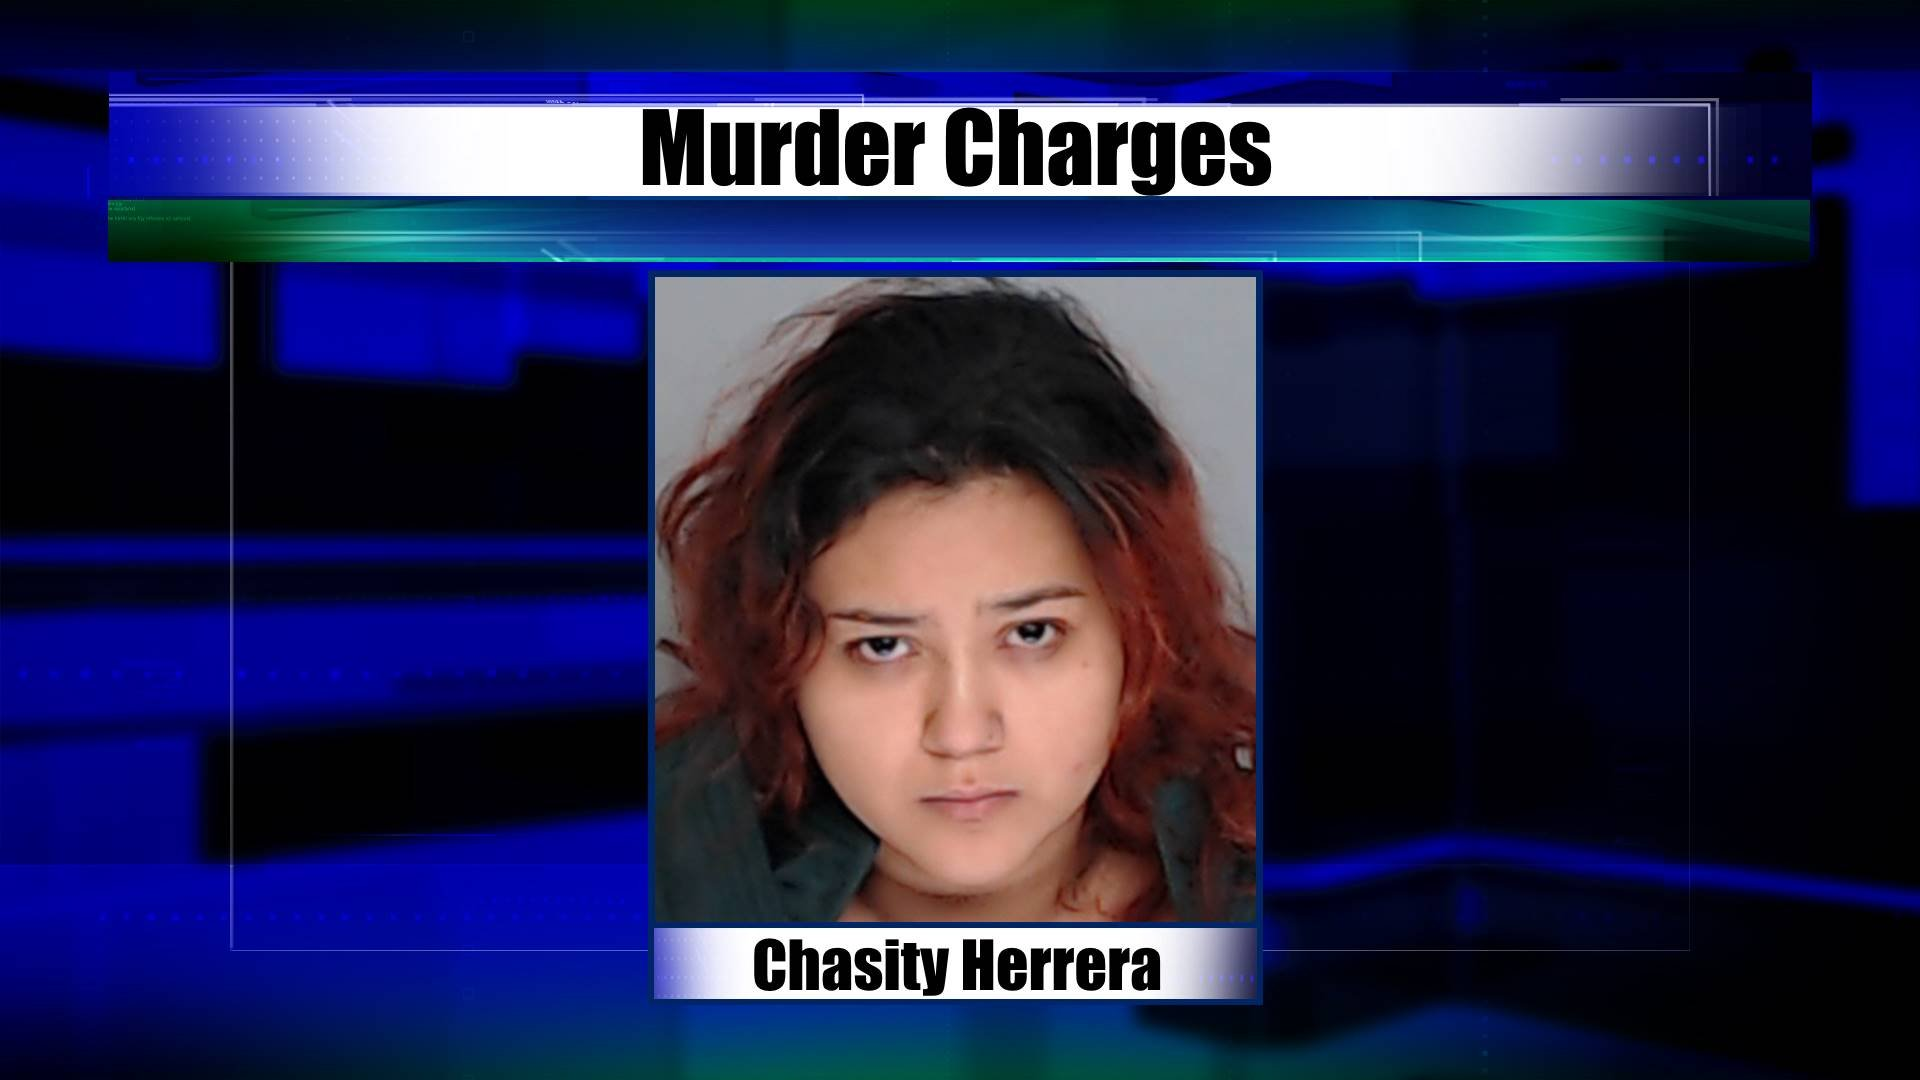 Chasity Herrera, 19, charged in death of 18-month-old daughter, Arabella Sanchez